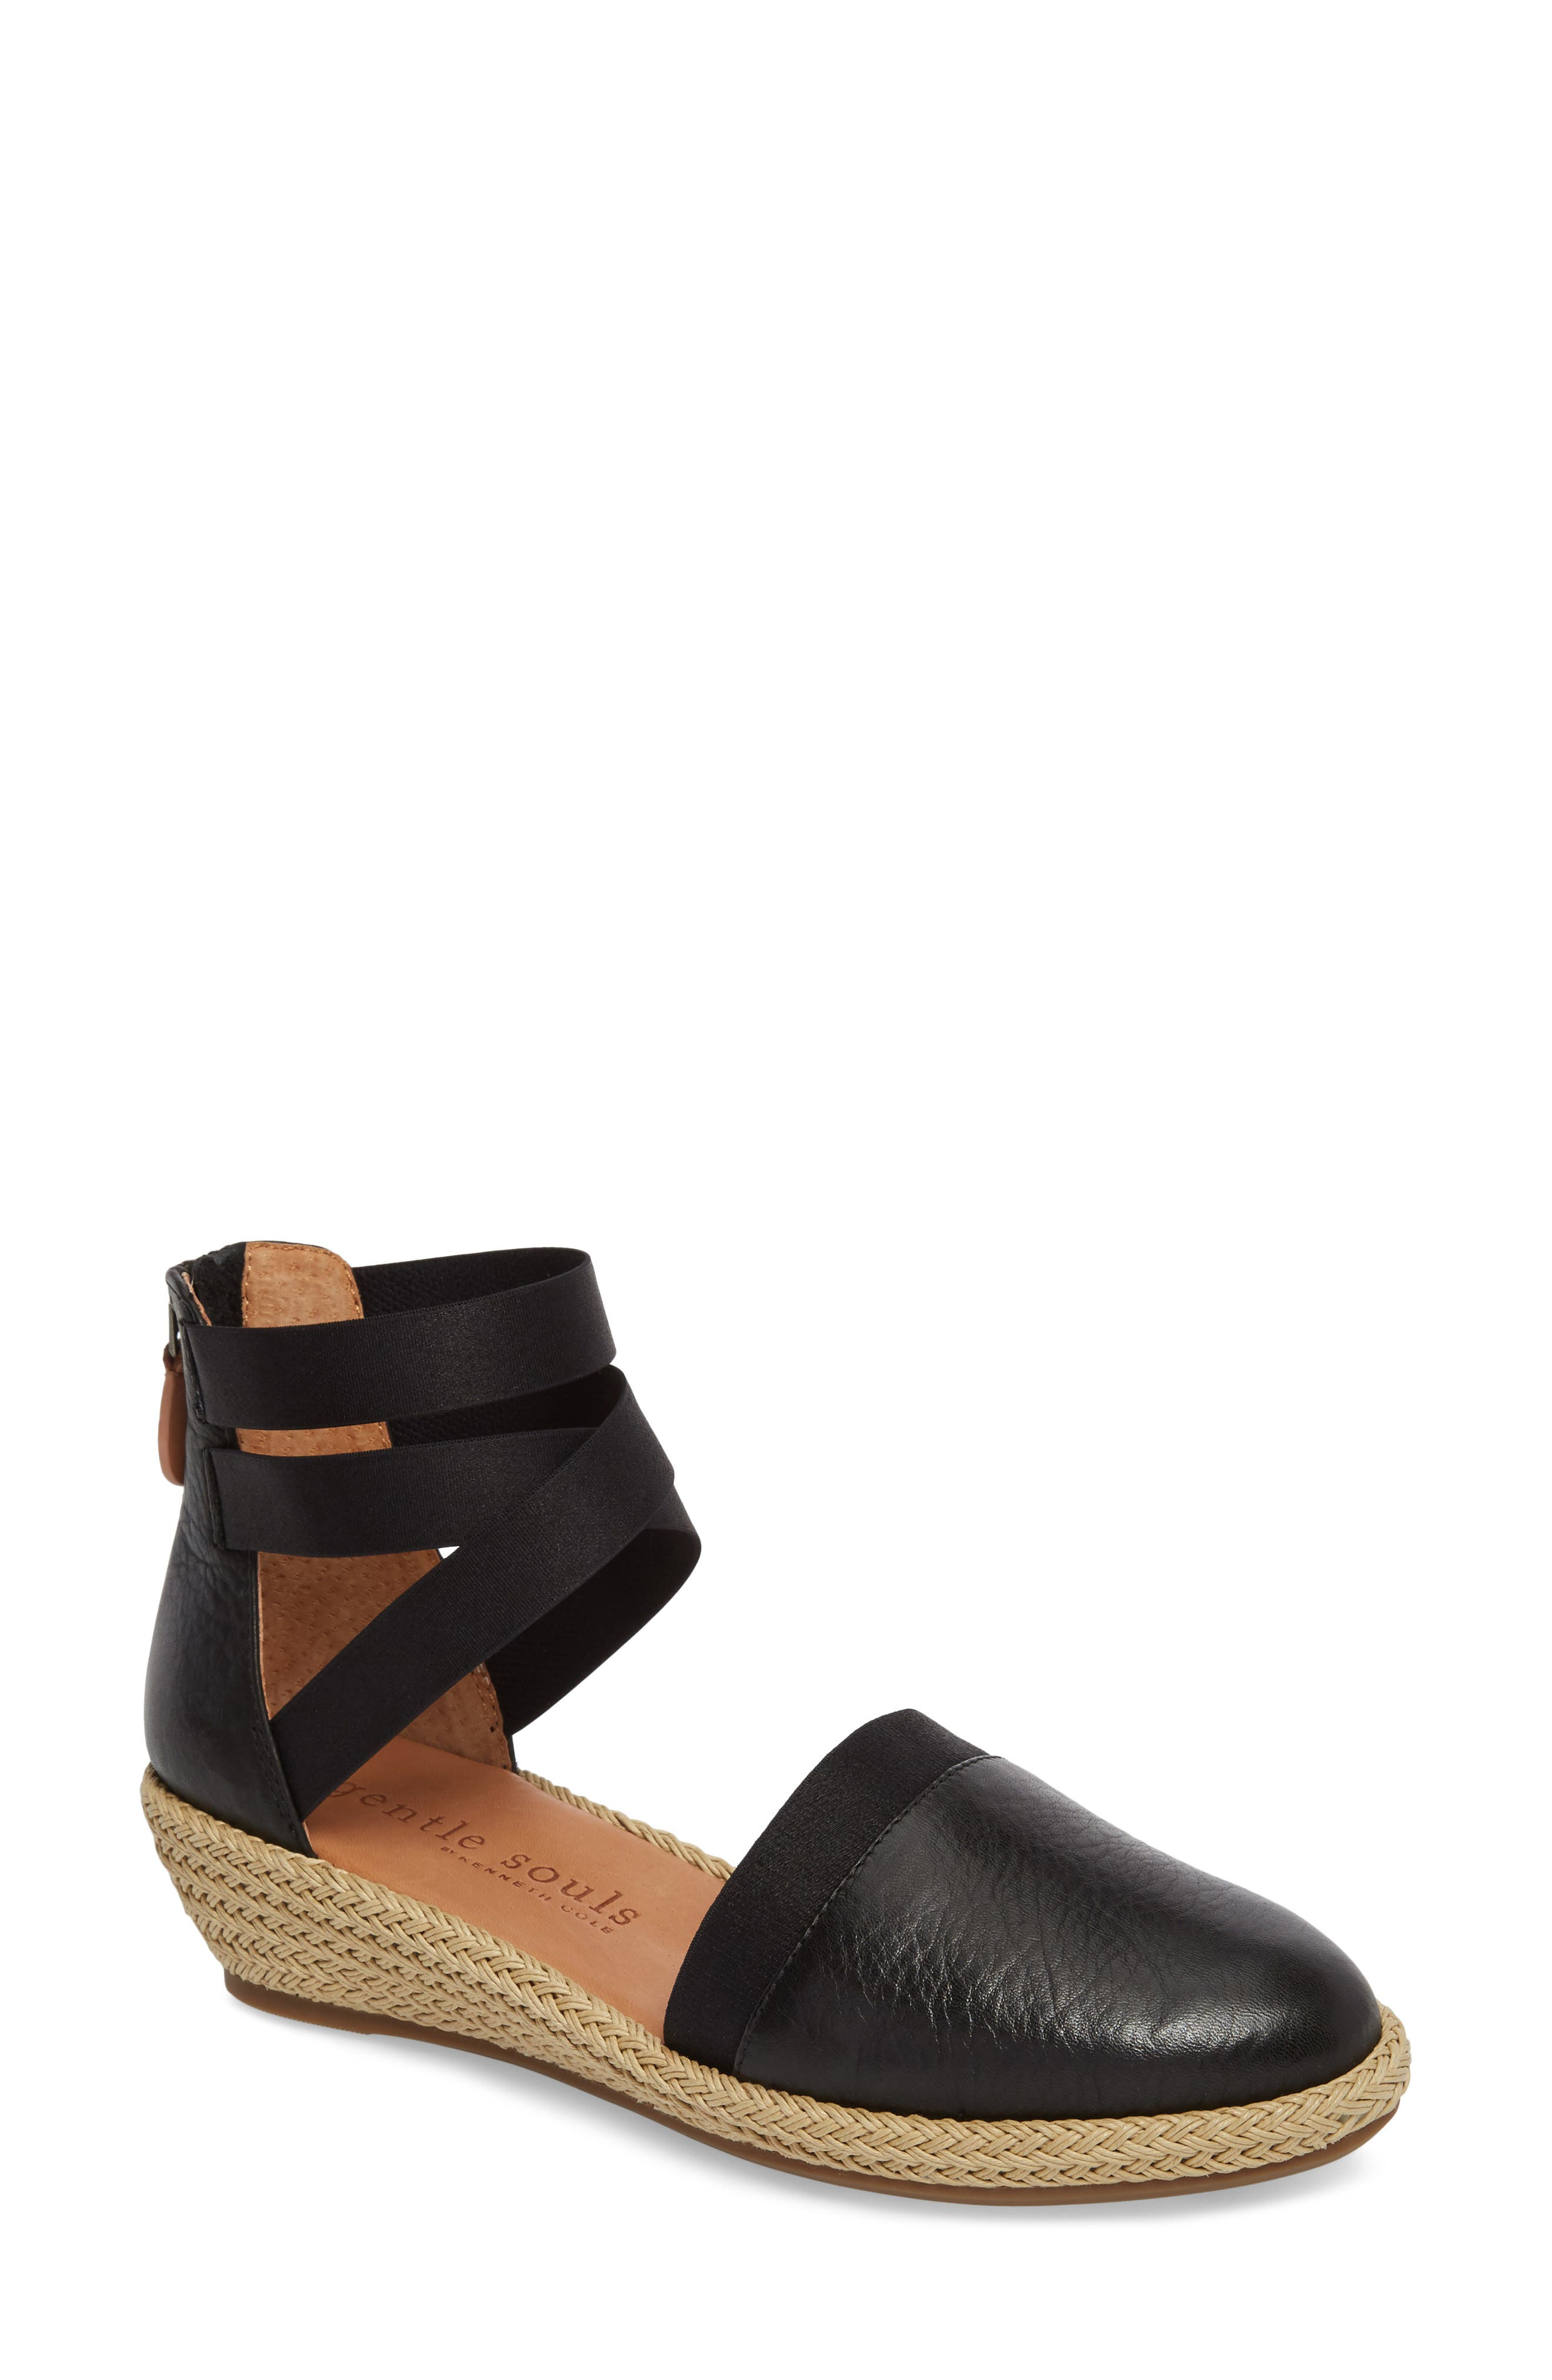 GENTLE SOULS BY KENNETH COLE, Beth Espadrille Sandal, Main thumbnail 1, color, BLACK LEATHER